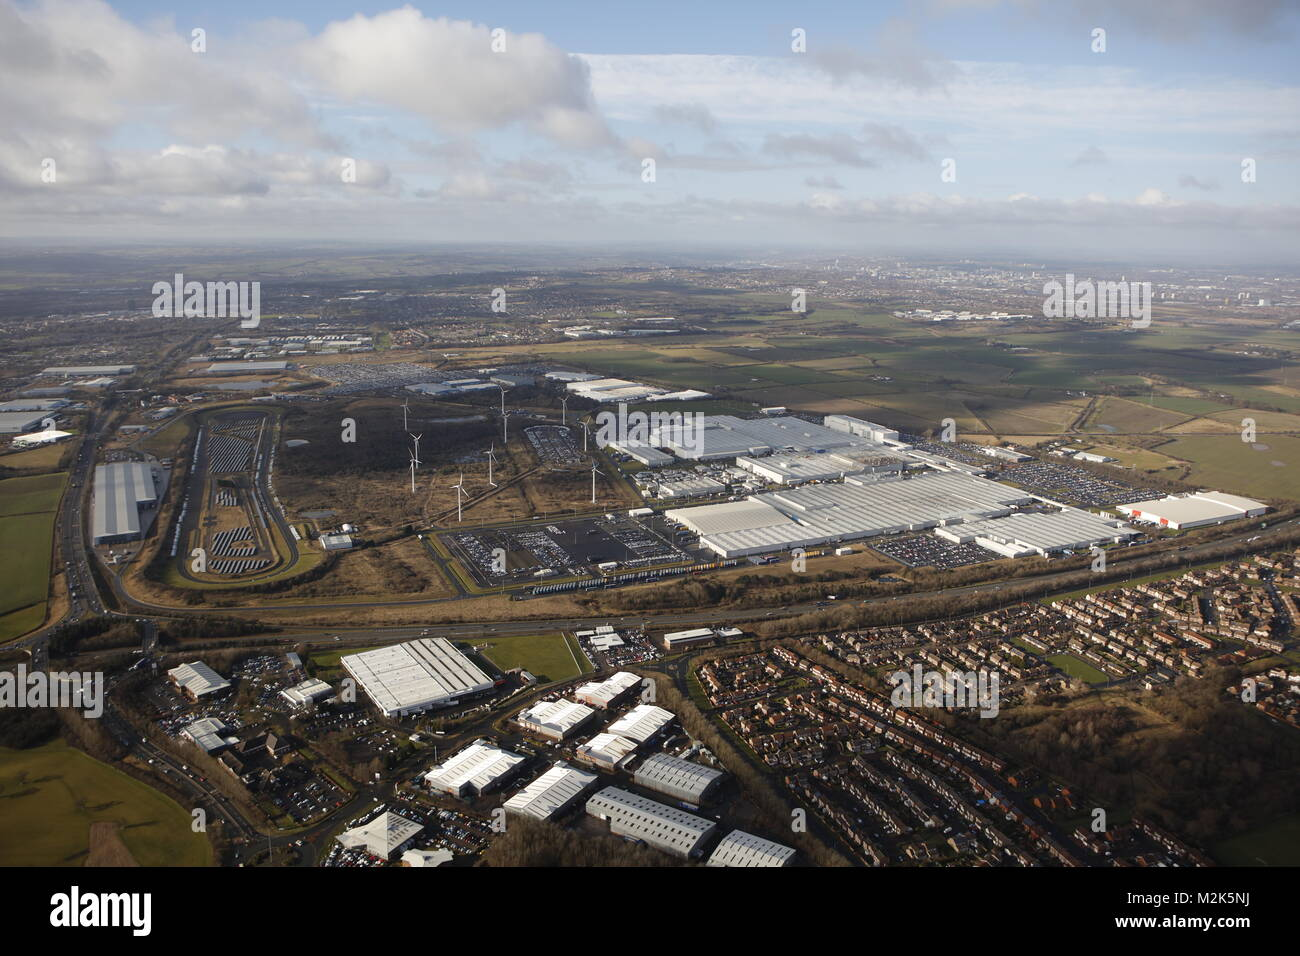 An aerial view of Nissan Motor Manufacturing UK, a large car manufacturing plant near Sunderland - Stock Image